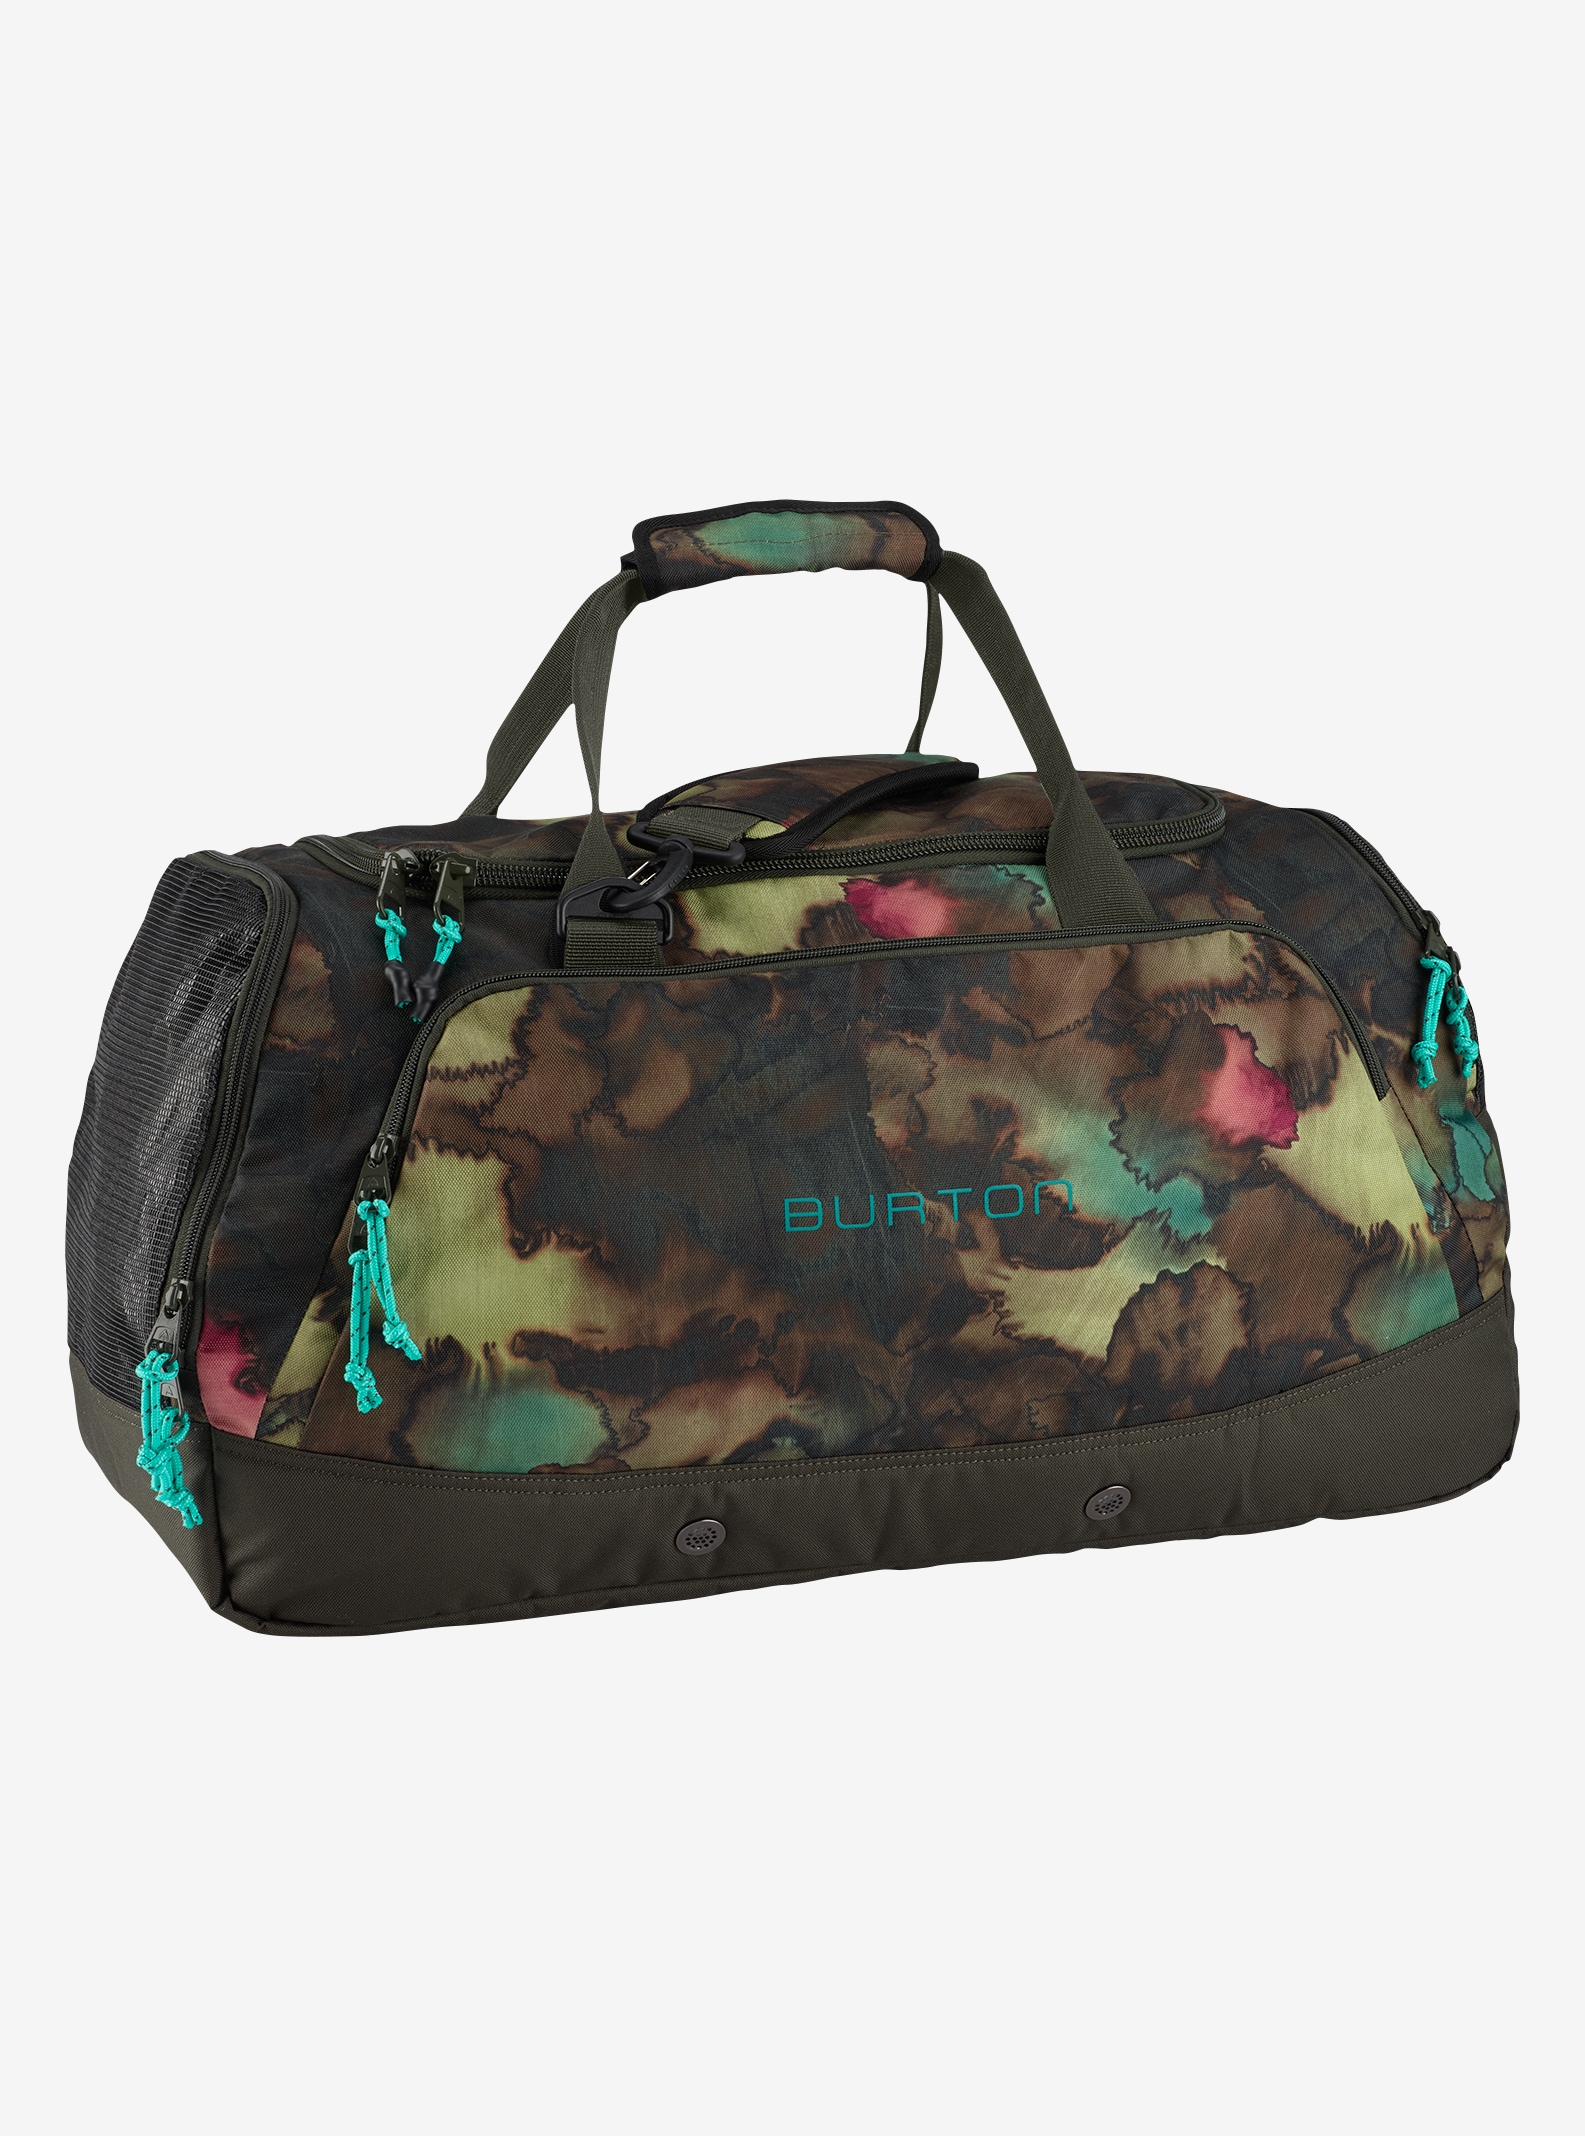 Burton Boothaus Bag 2.0 Large shown in Tea Camo Print